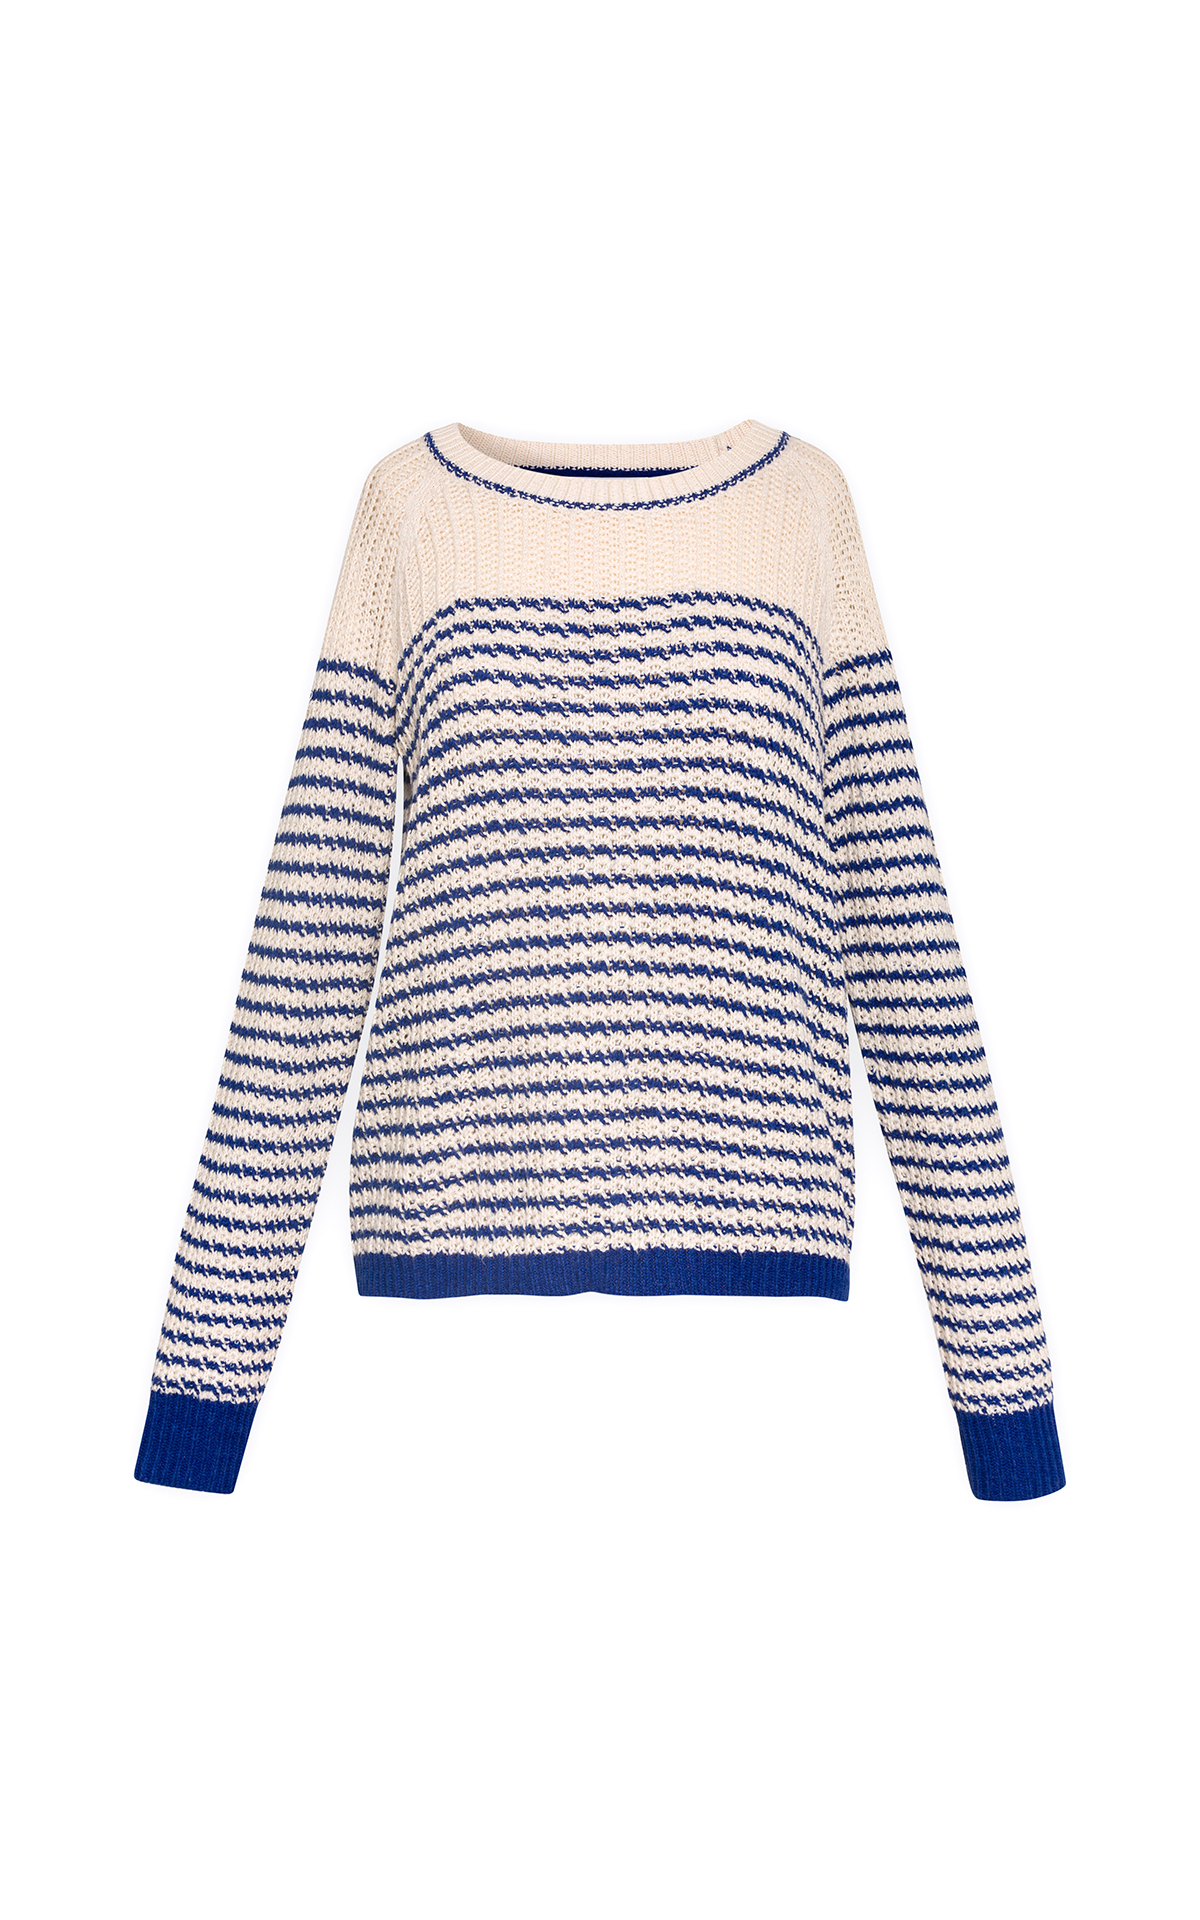 Gerard Darel Elvezia sweater la vallée village